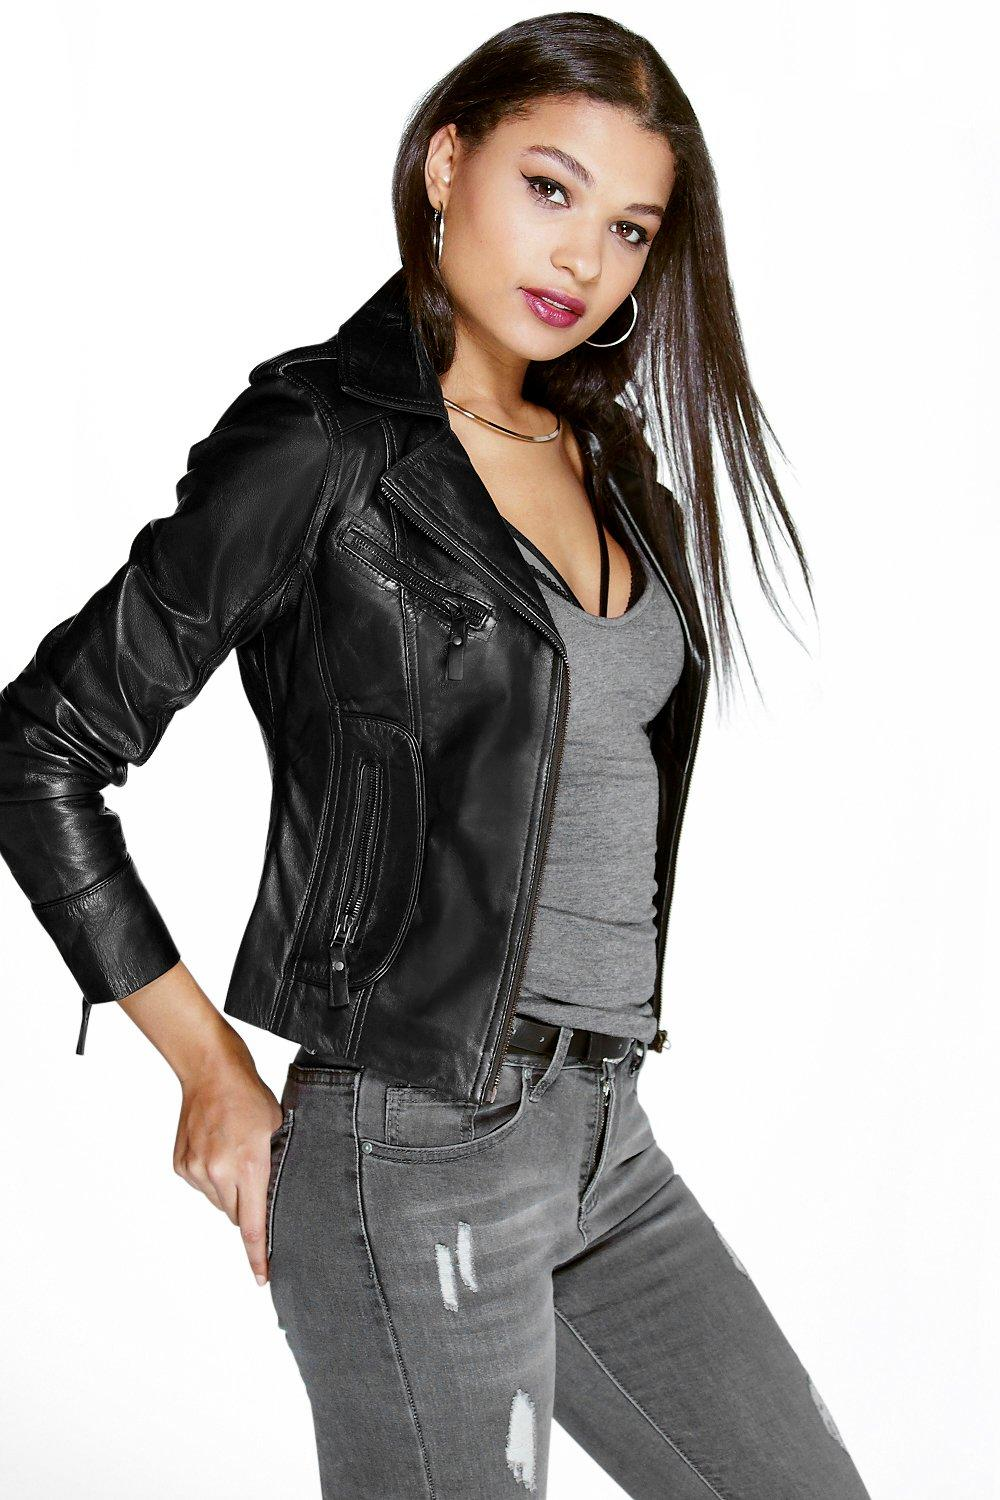 Leather jacket boohoo - Boutique Zoe Leather Biker Jacket Hover To Zoom